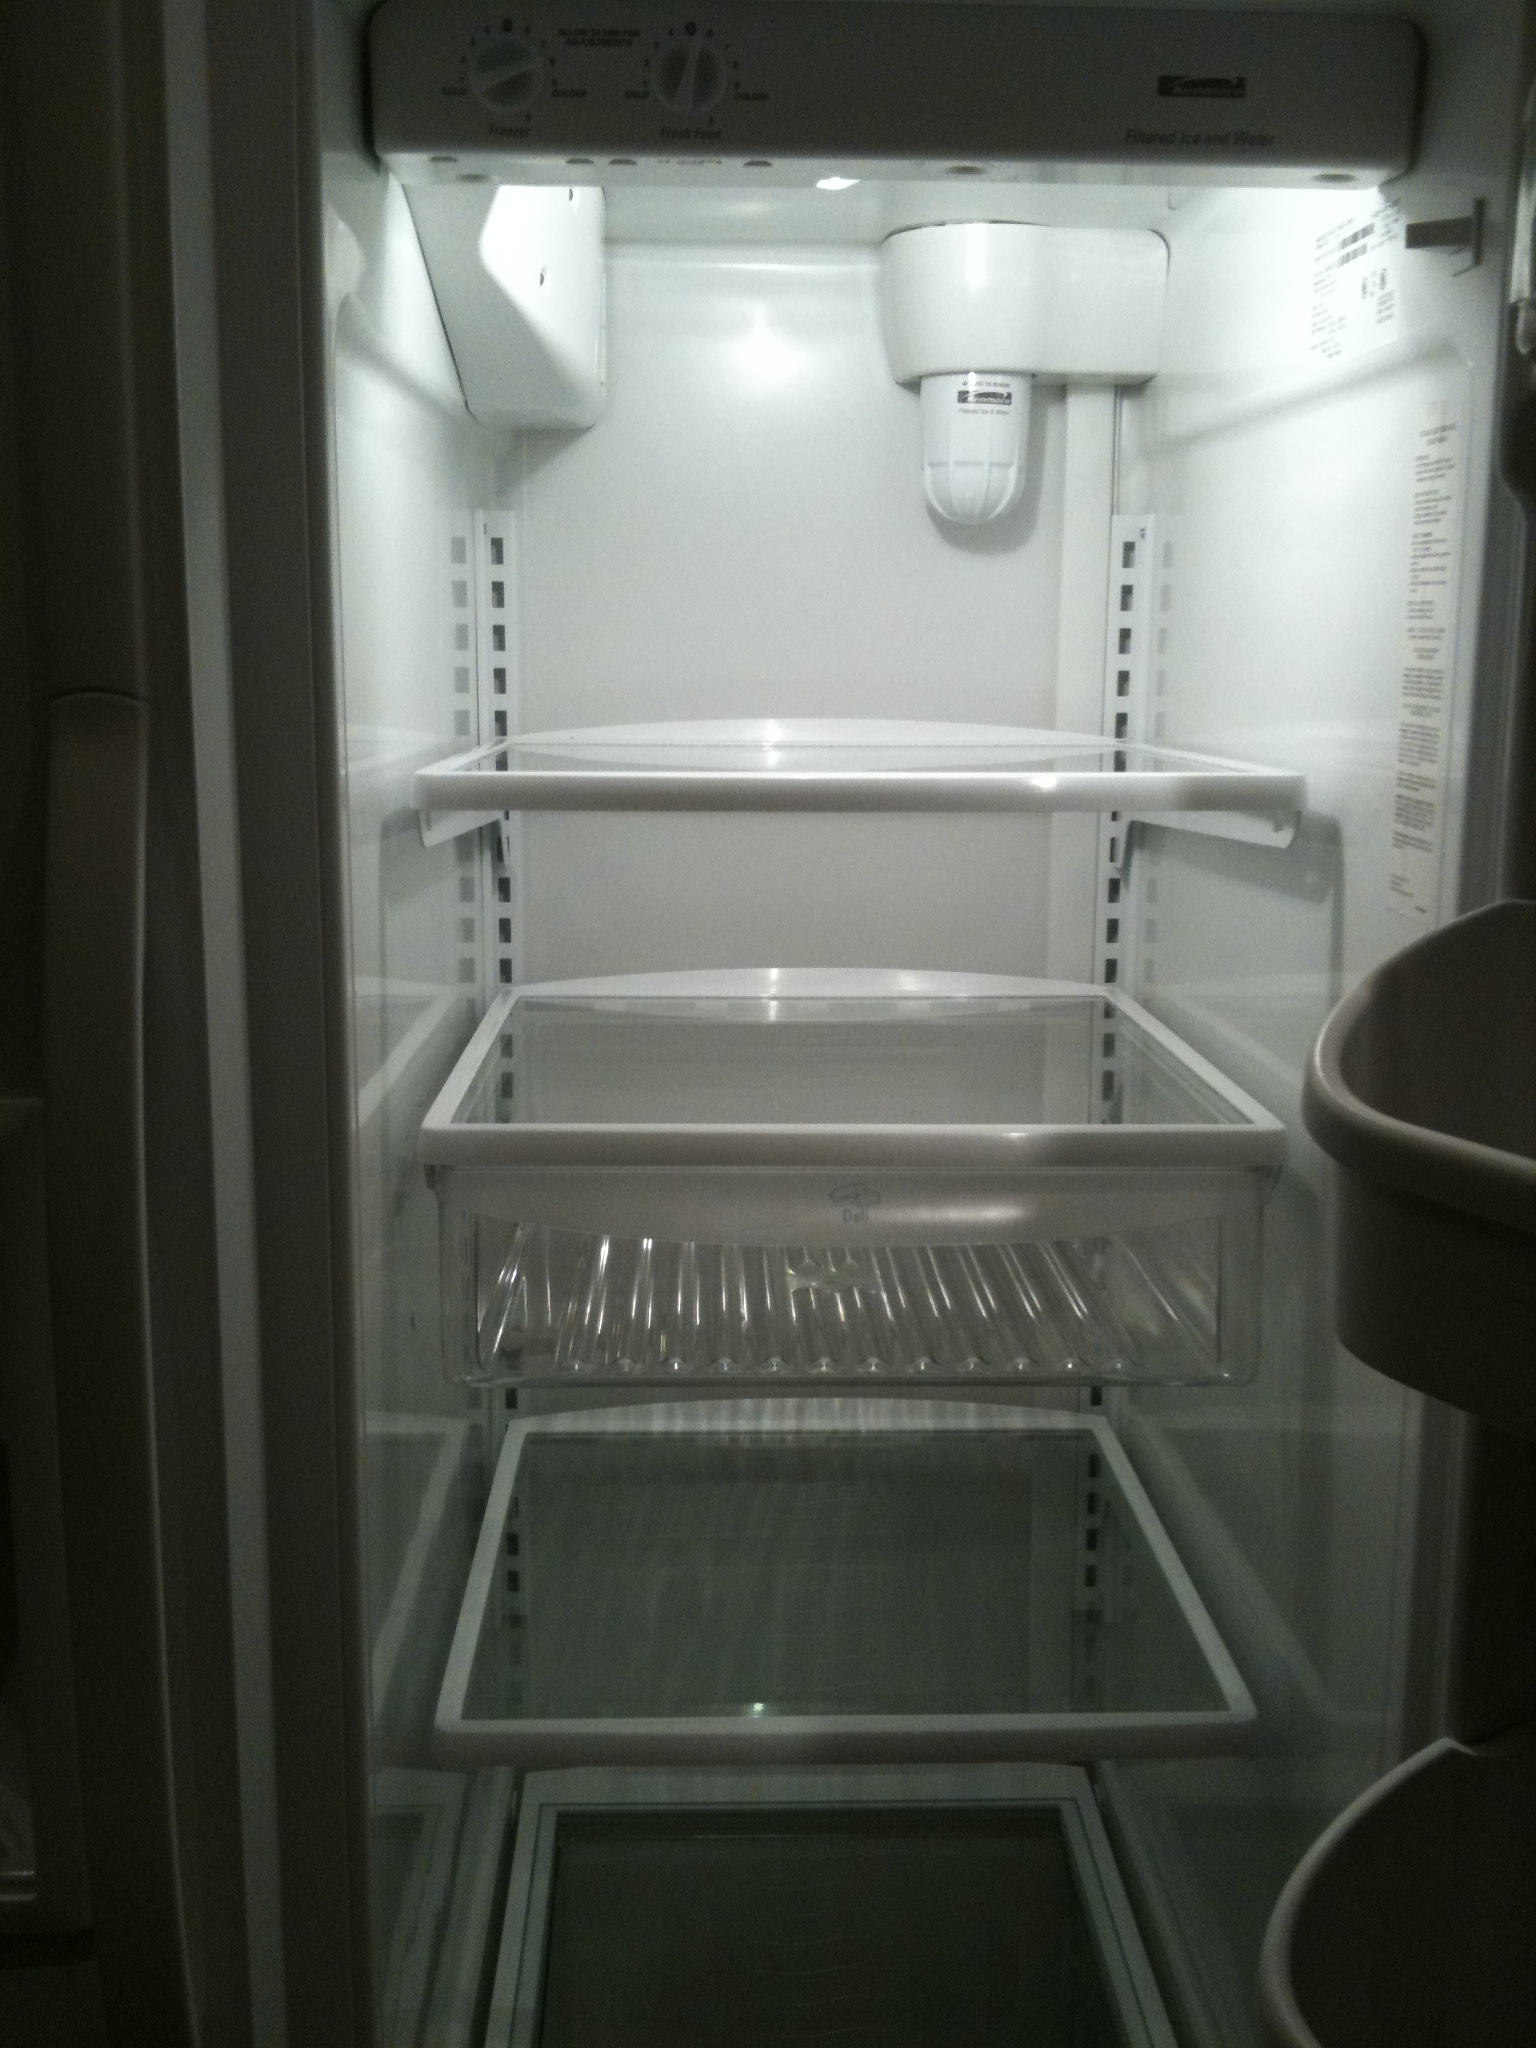 clean_fridge